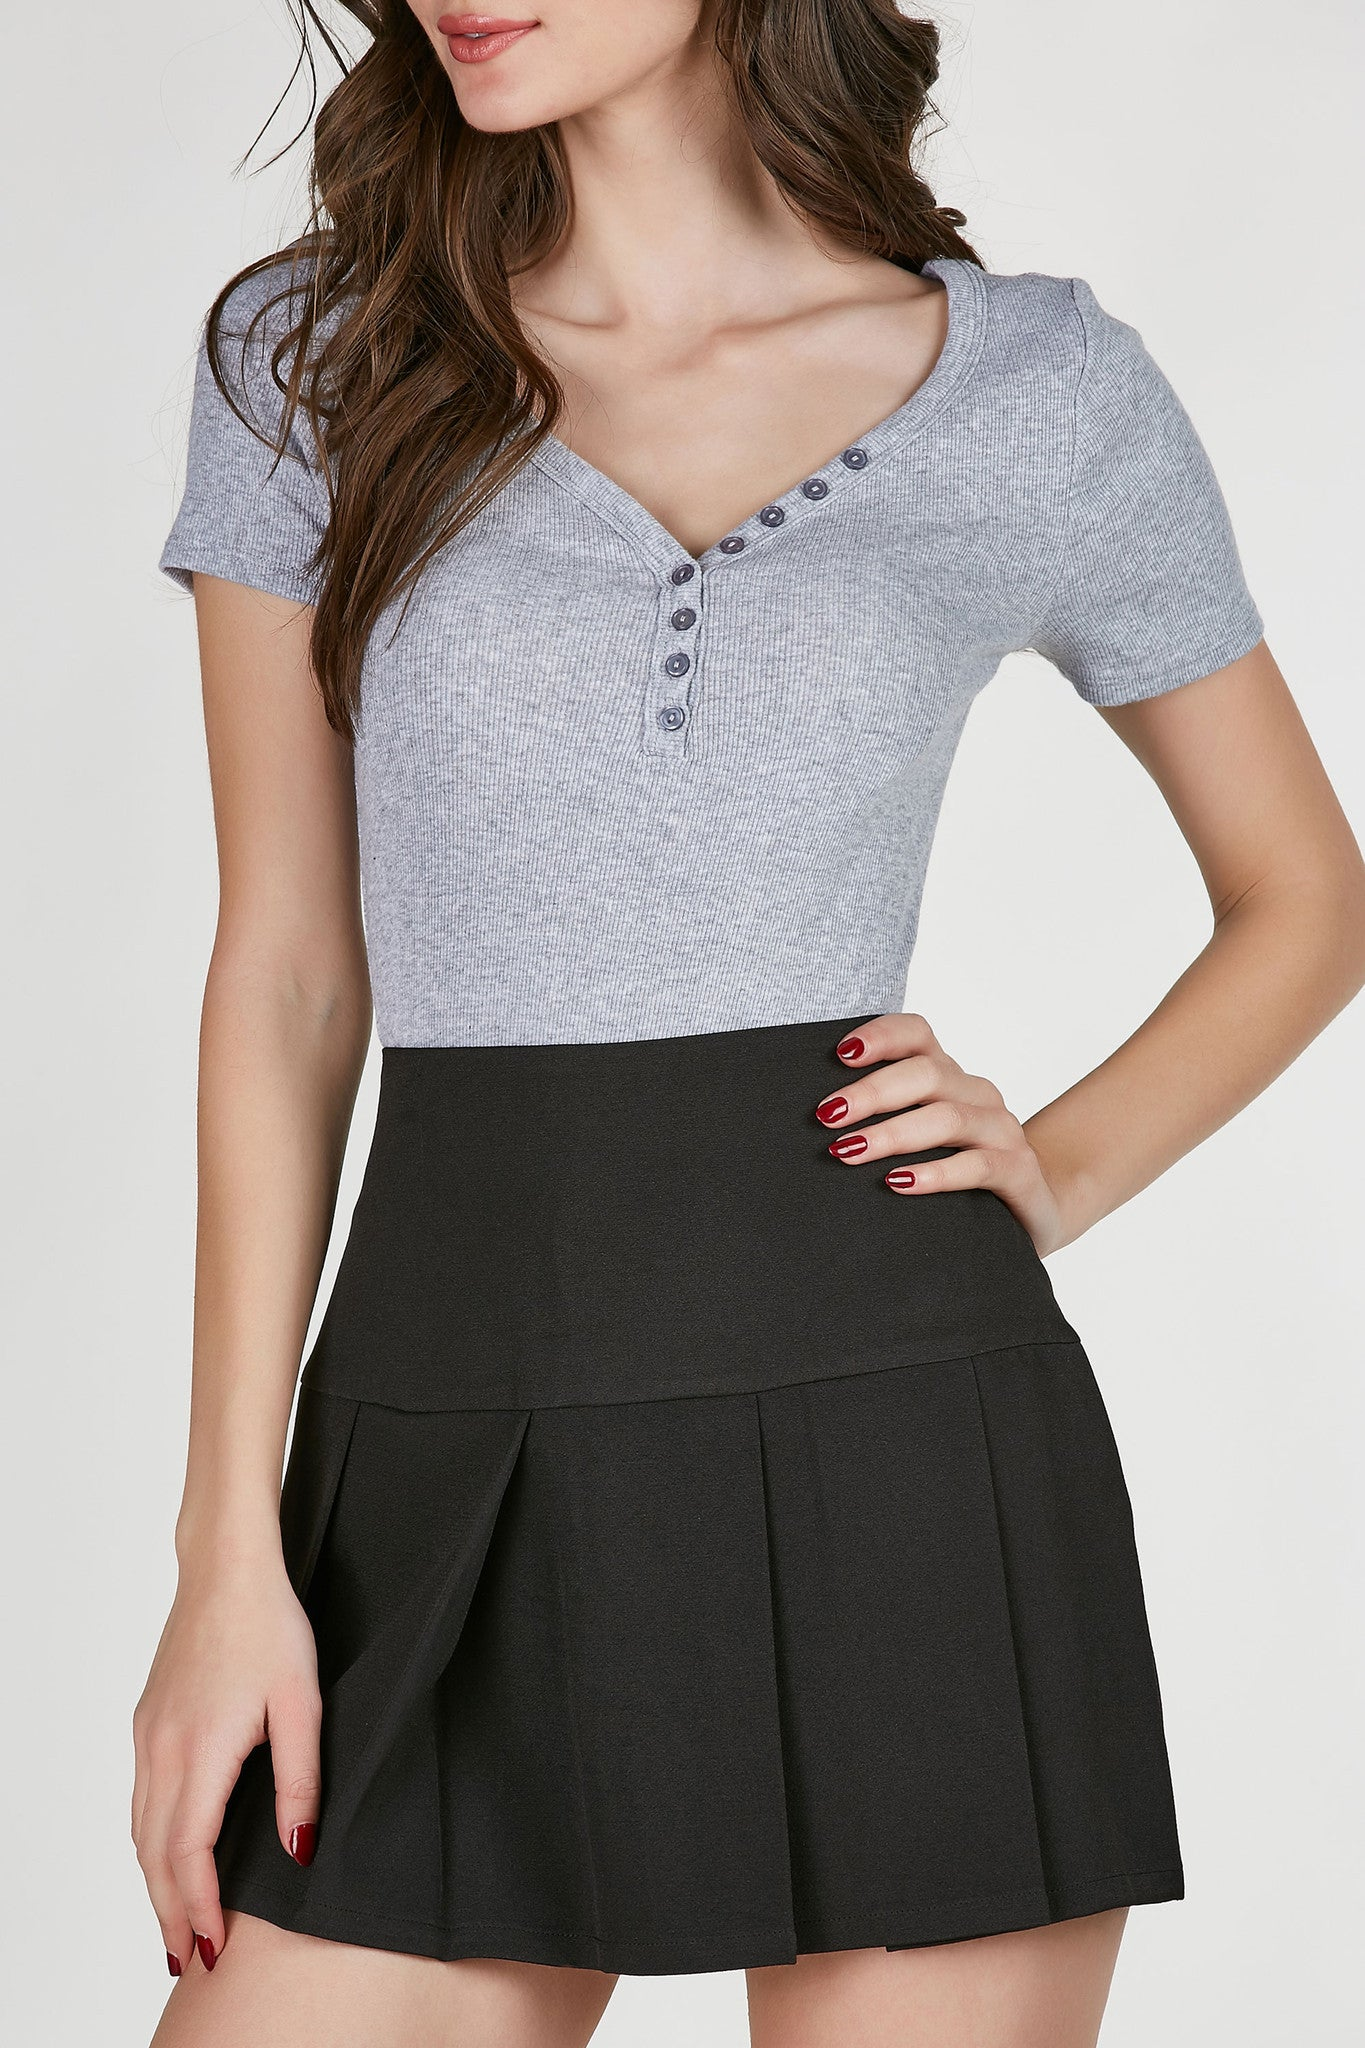 V-neck short sleeve ribbed top with slightly rounded hem. Ribbed throughout with faux buttons for added detail.